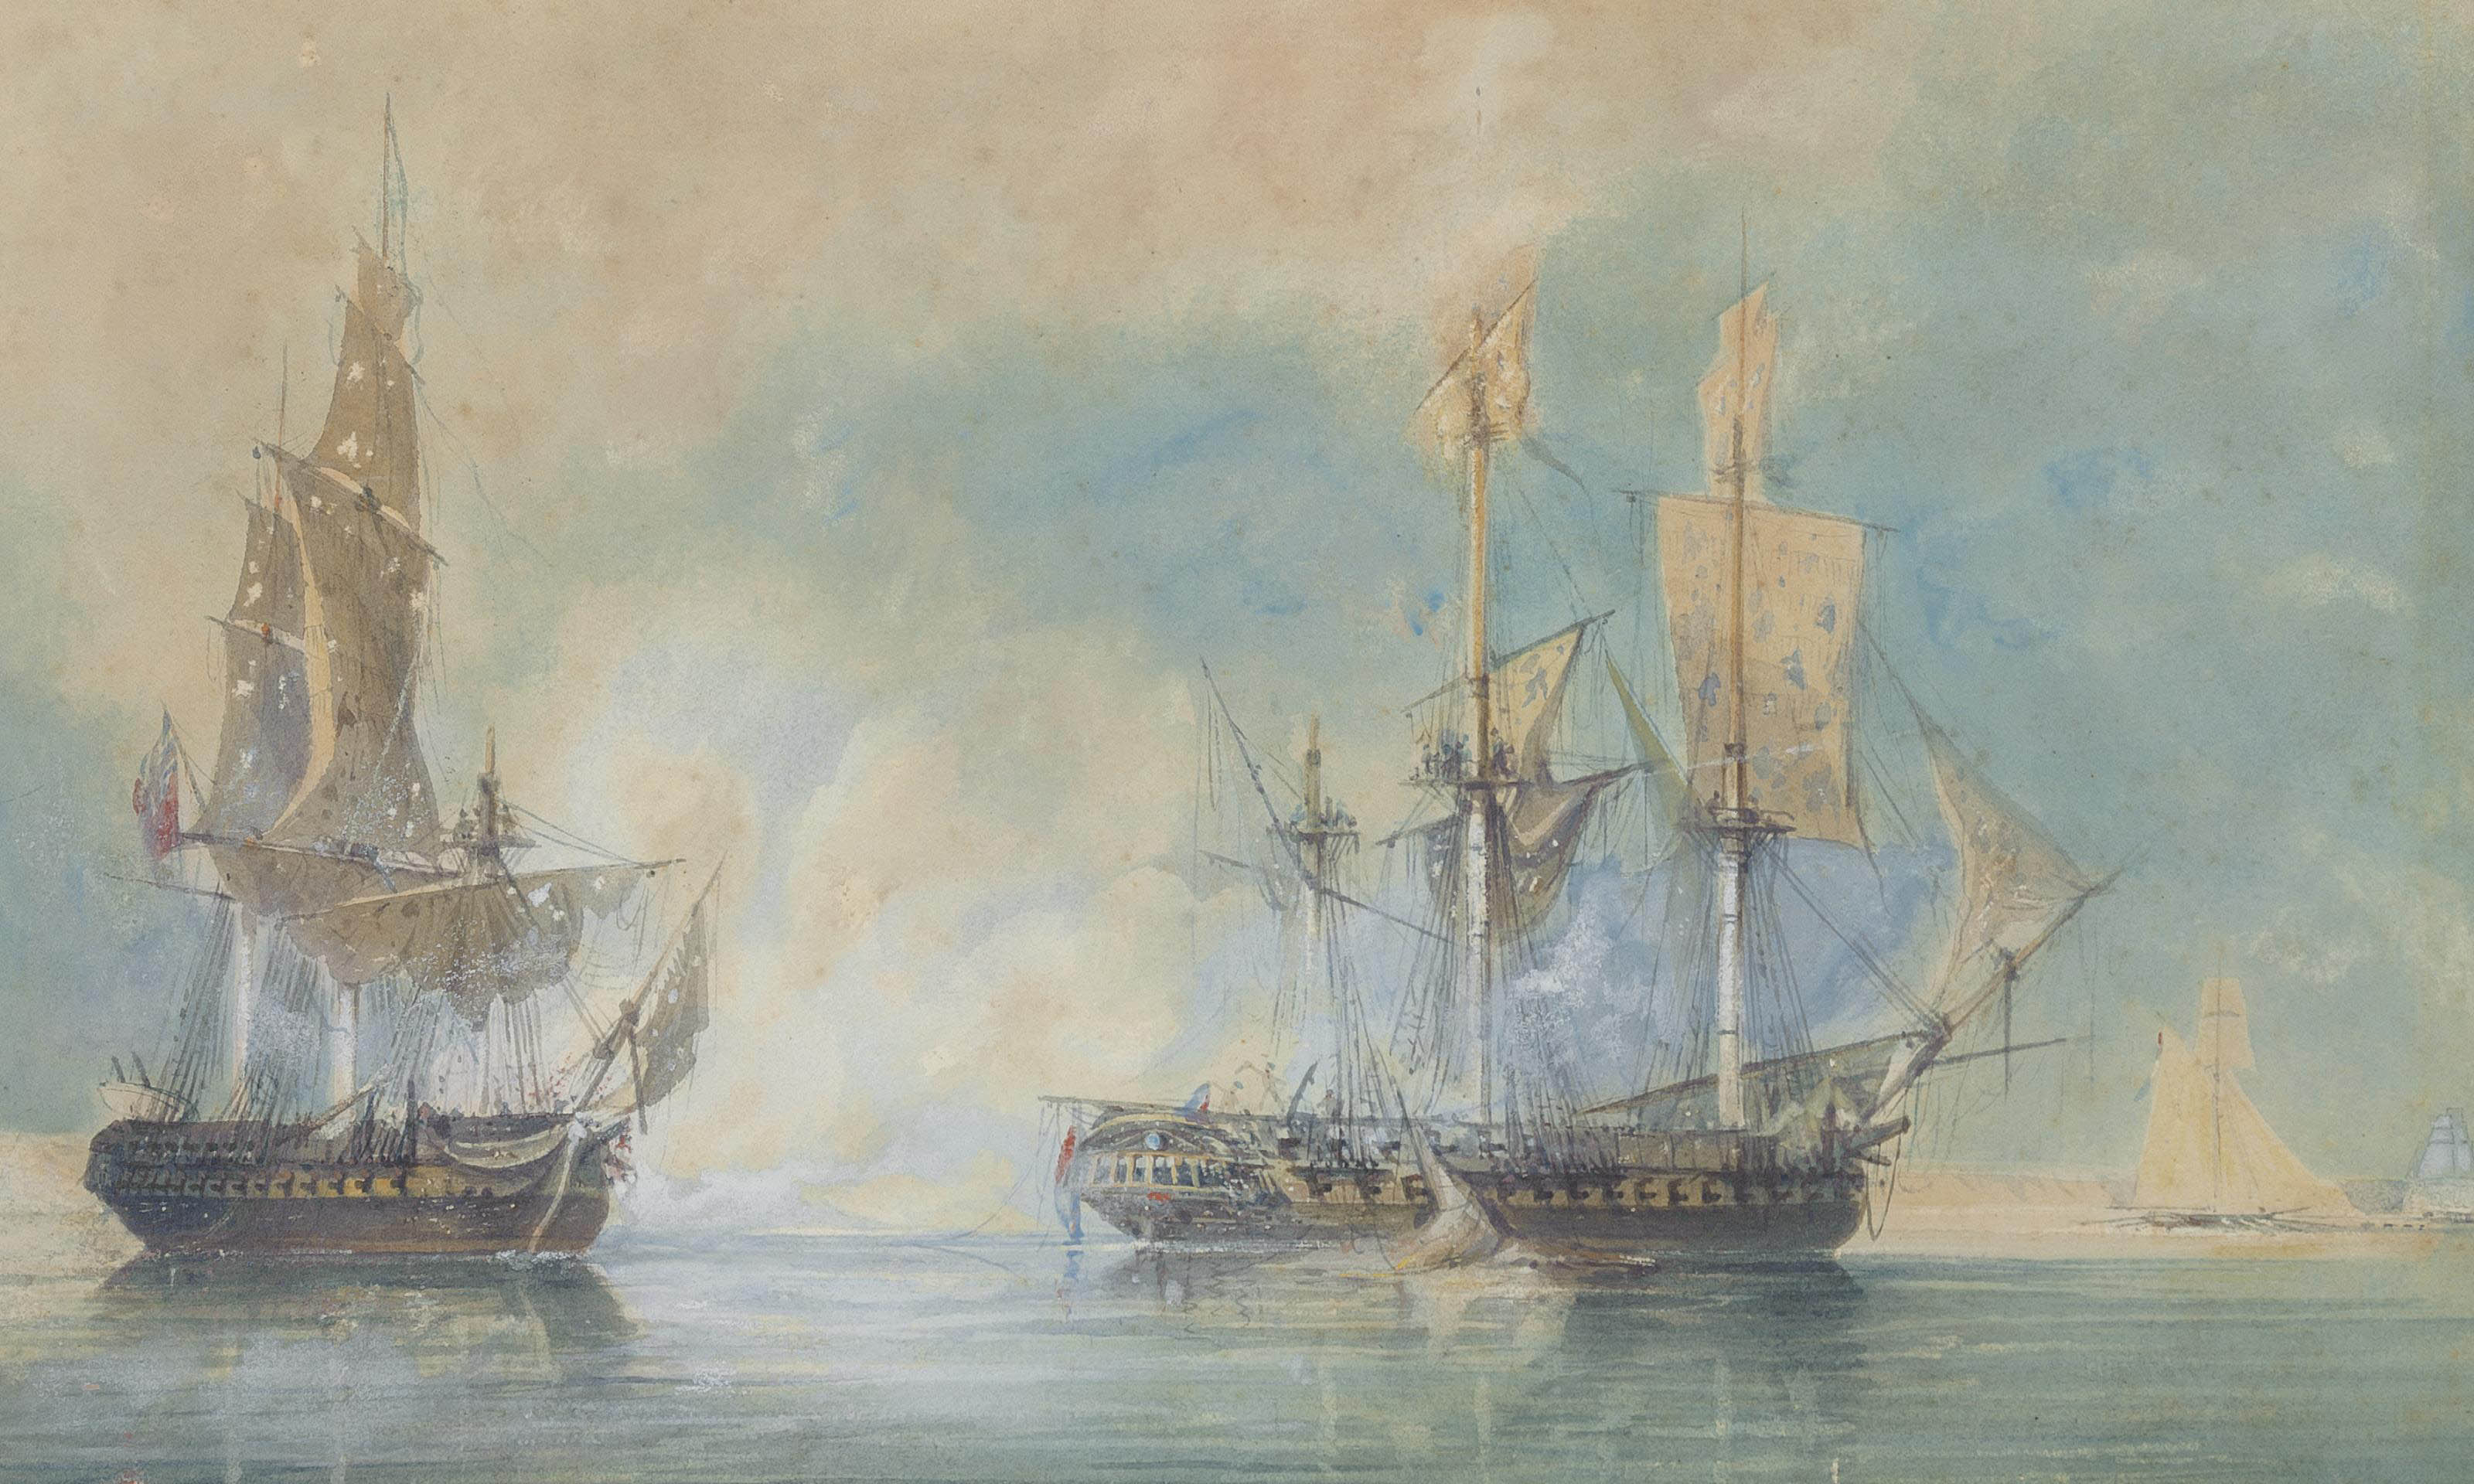 H.M.S. Crescent, under the command of Captain James Saumarez, capturing the French frigate Réunion off Cherbourg, 20th October 1793